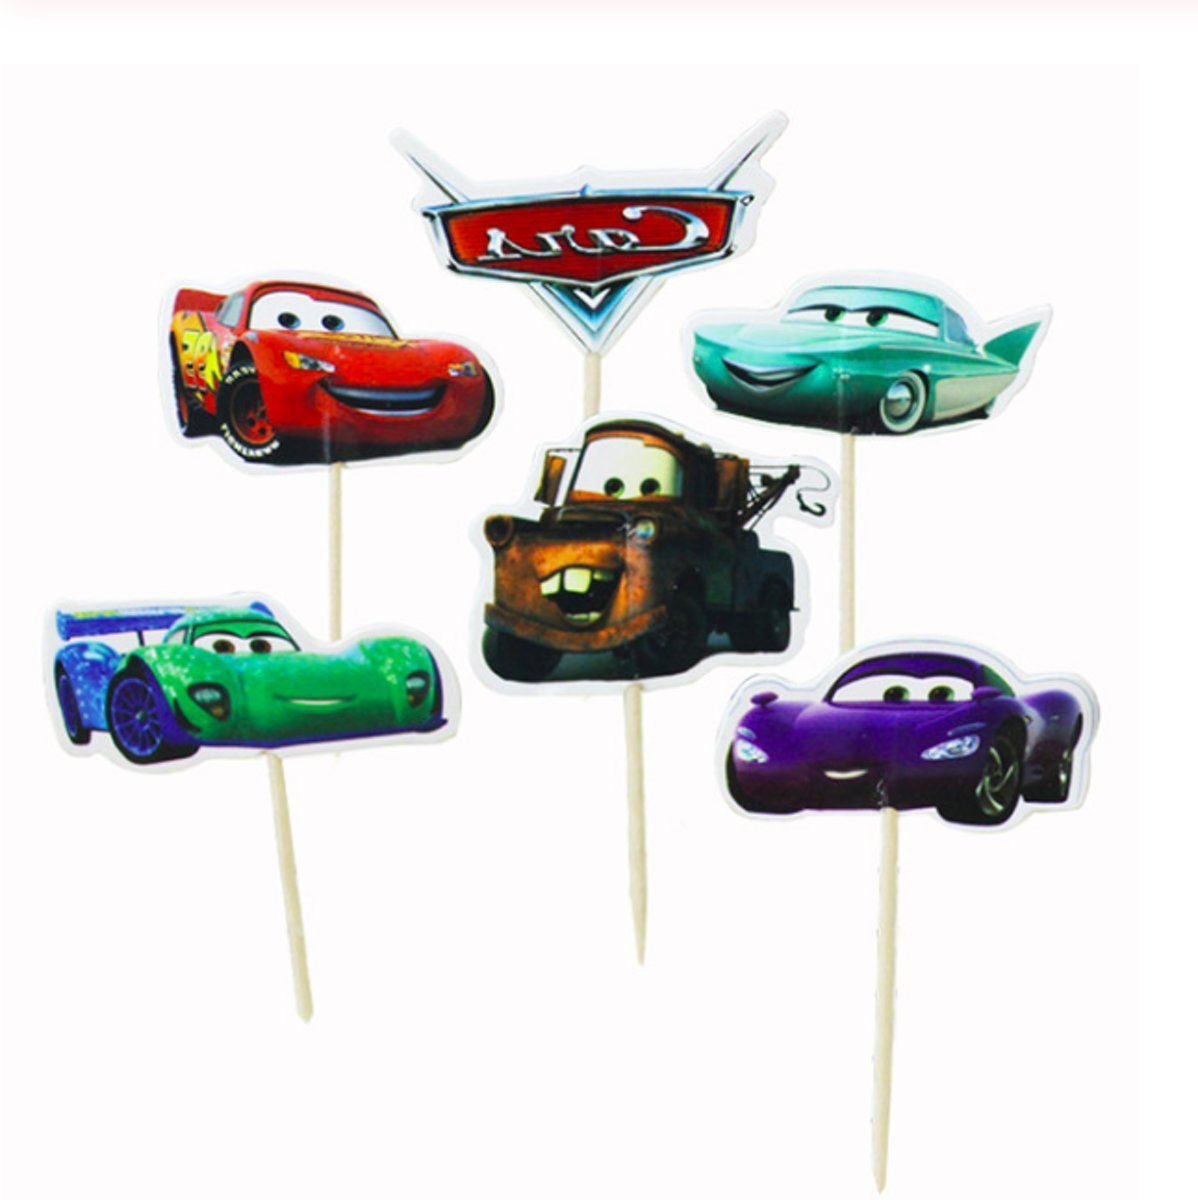 ProductsGoods - 48 x Leuke Cars coctailprikkers